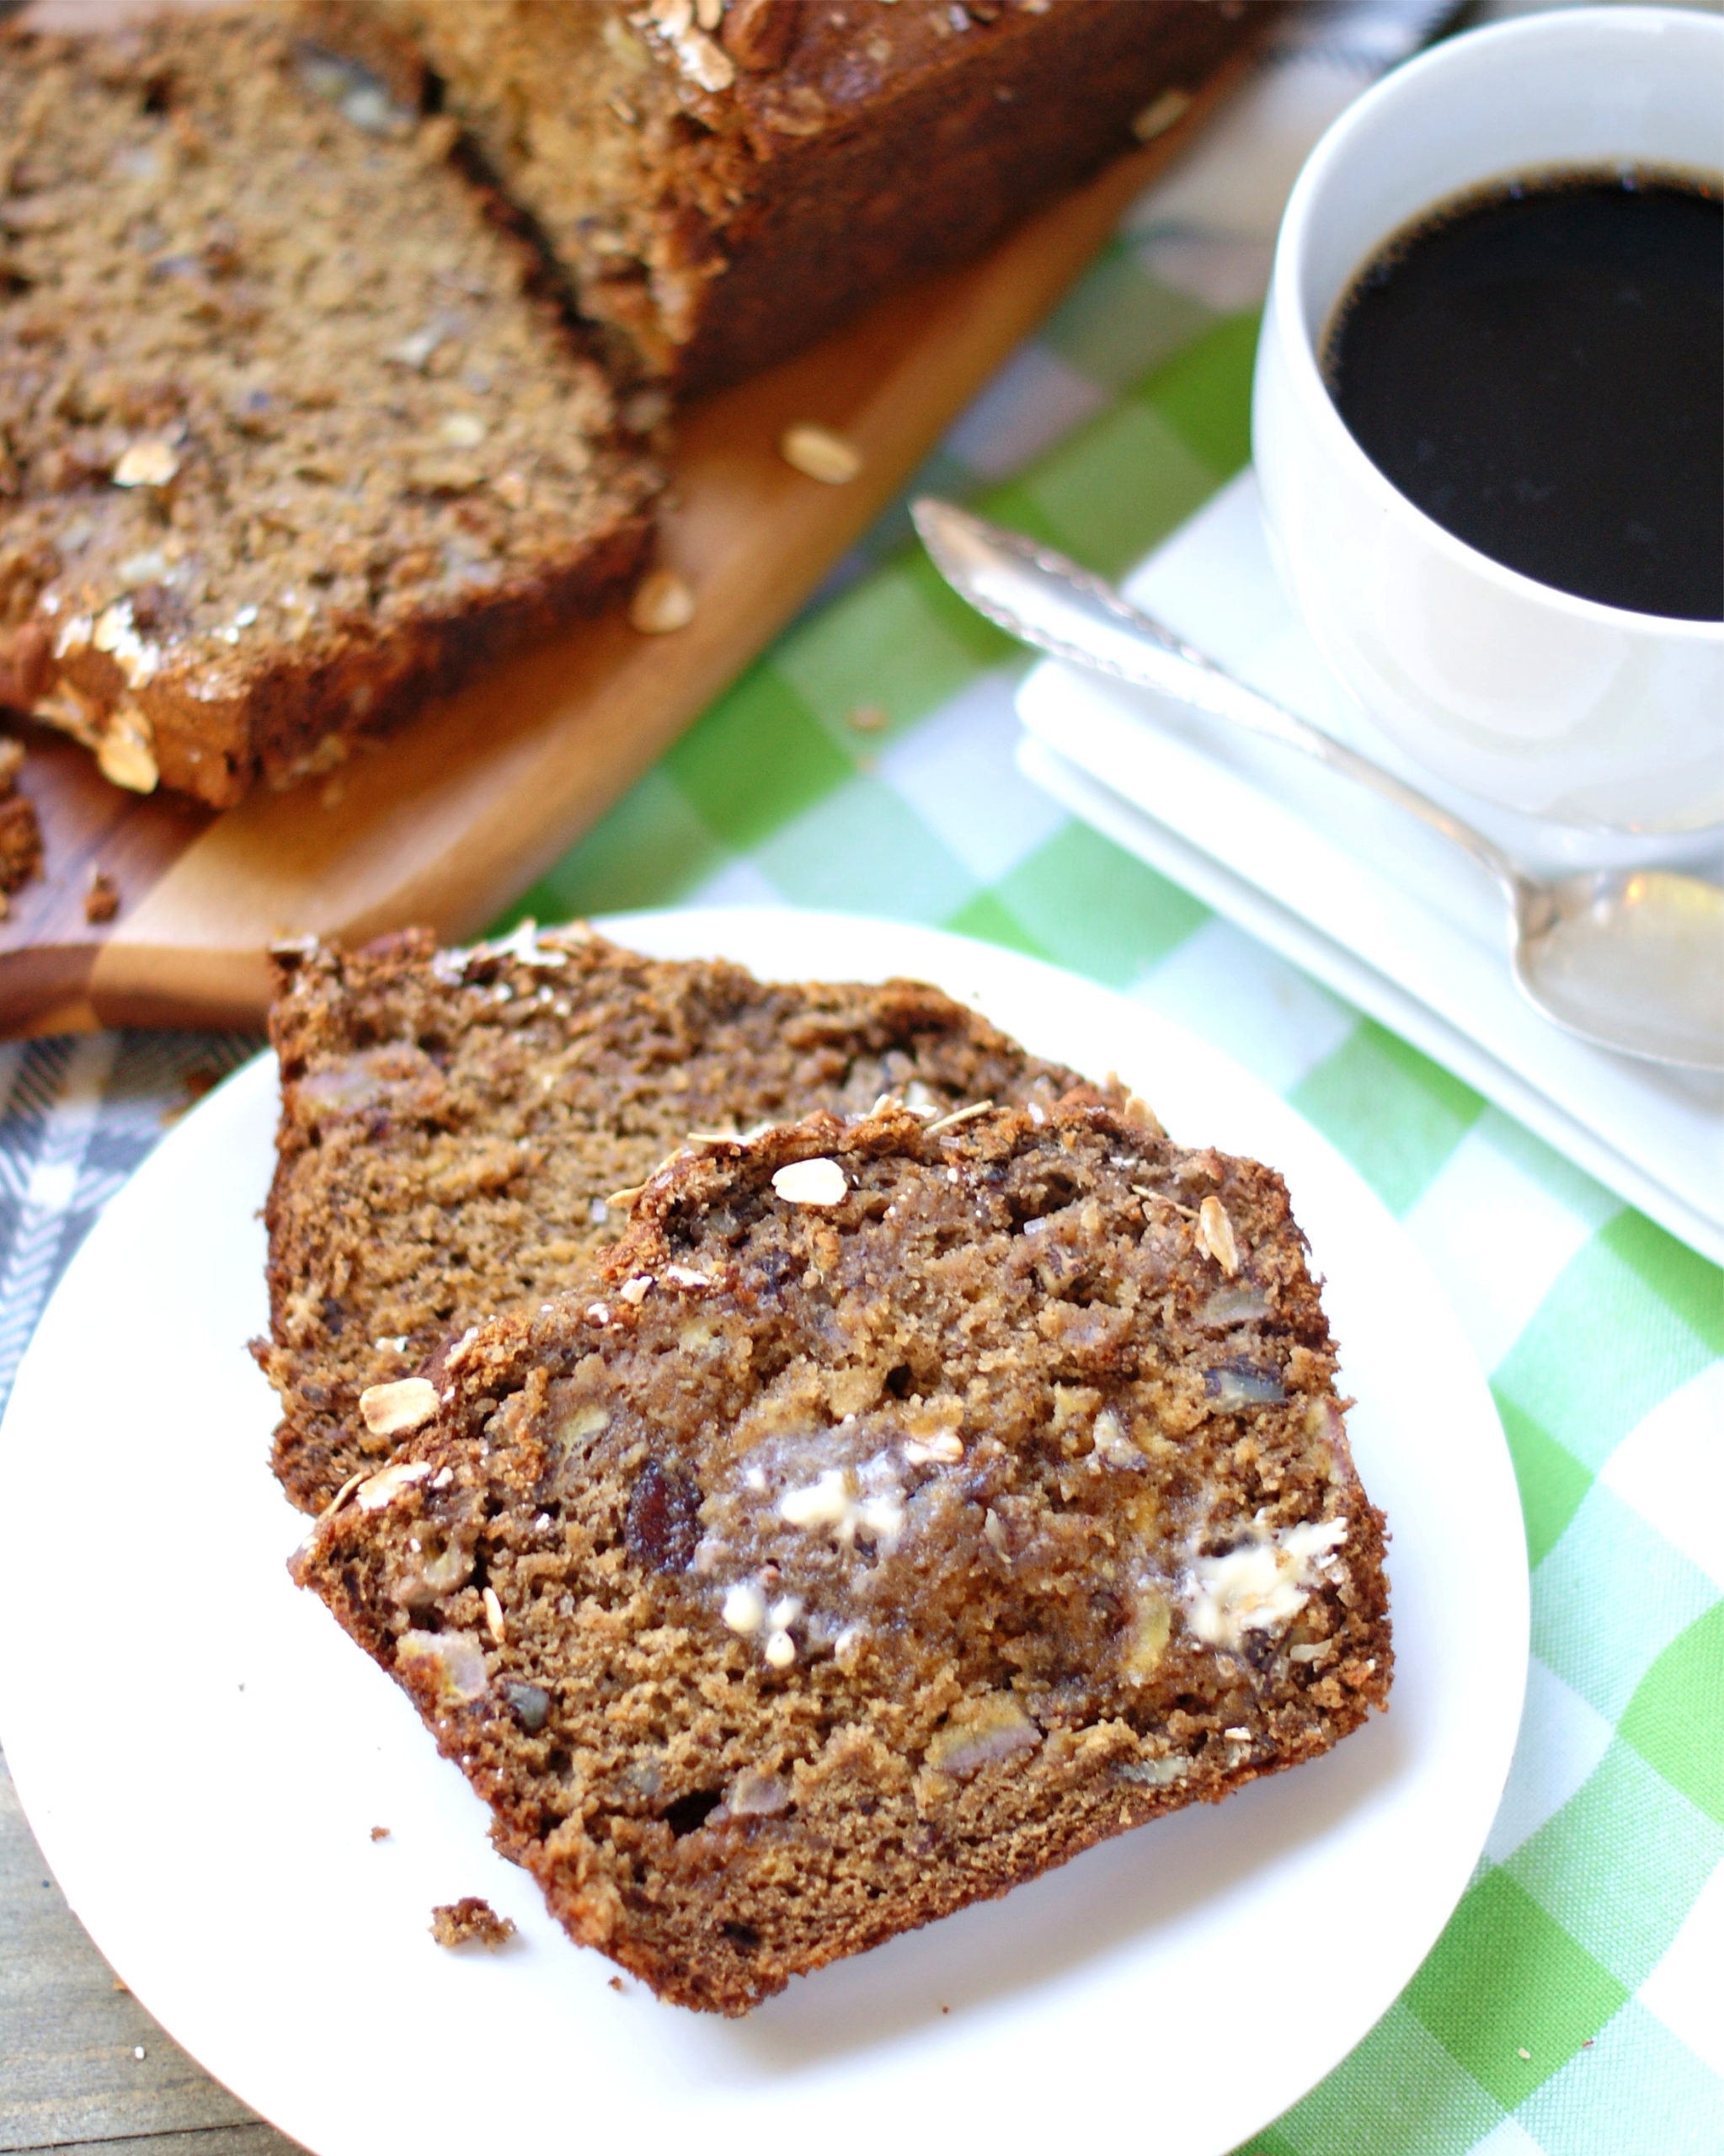 A slice of cinnamon banana bread with butter